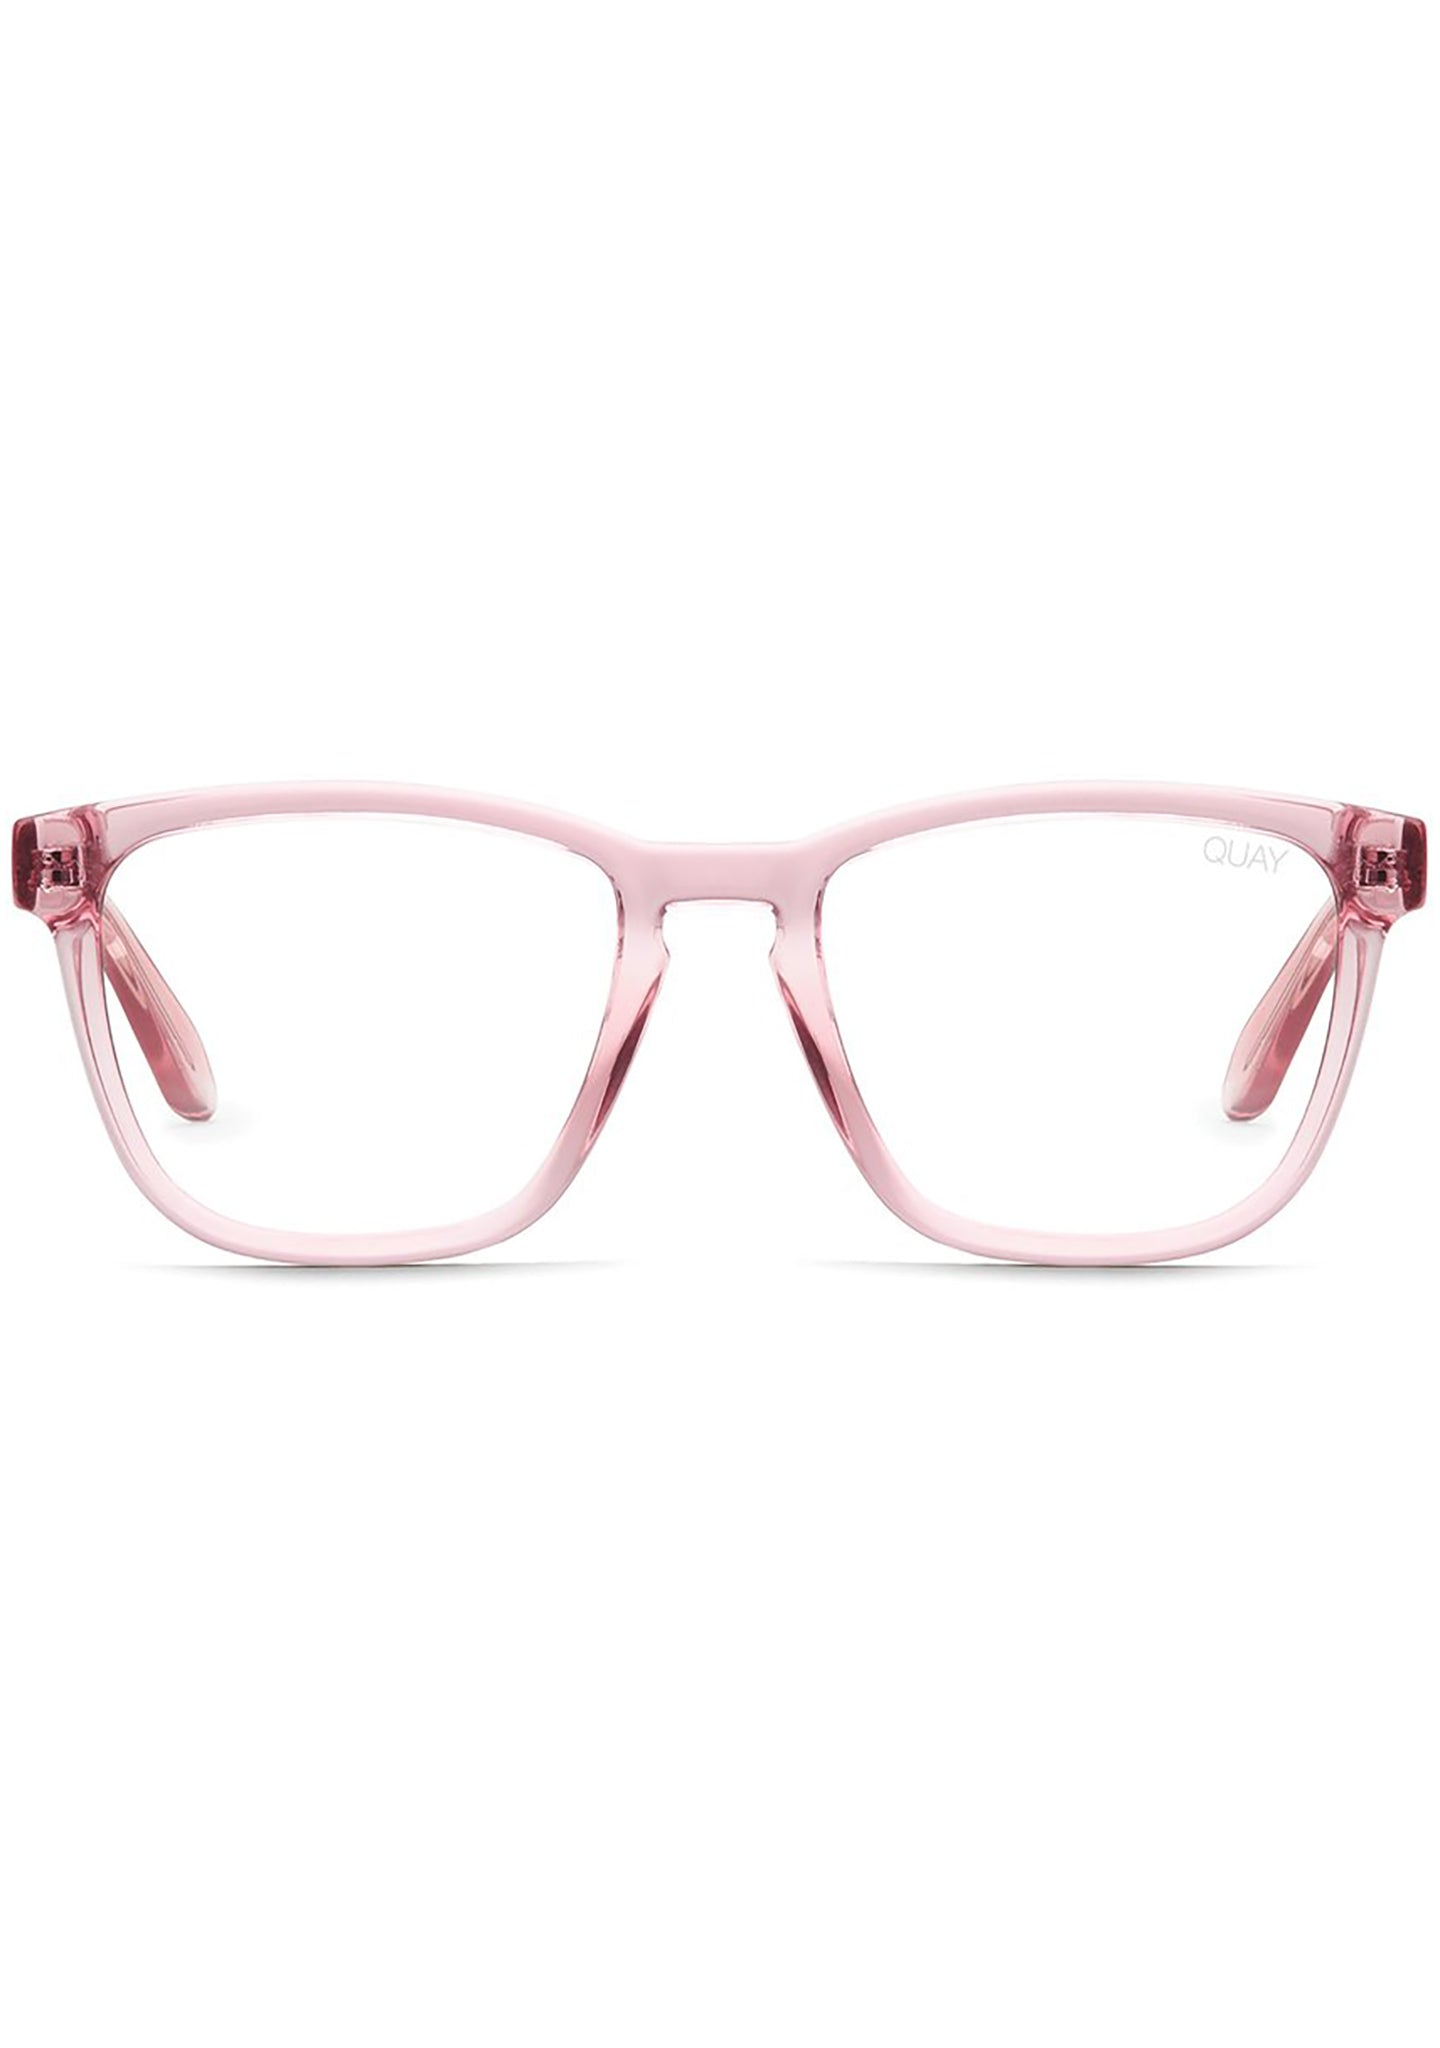 6c7acb47c81 Blue Light Hardwire Glasses in Pink